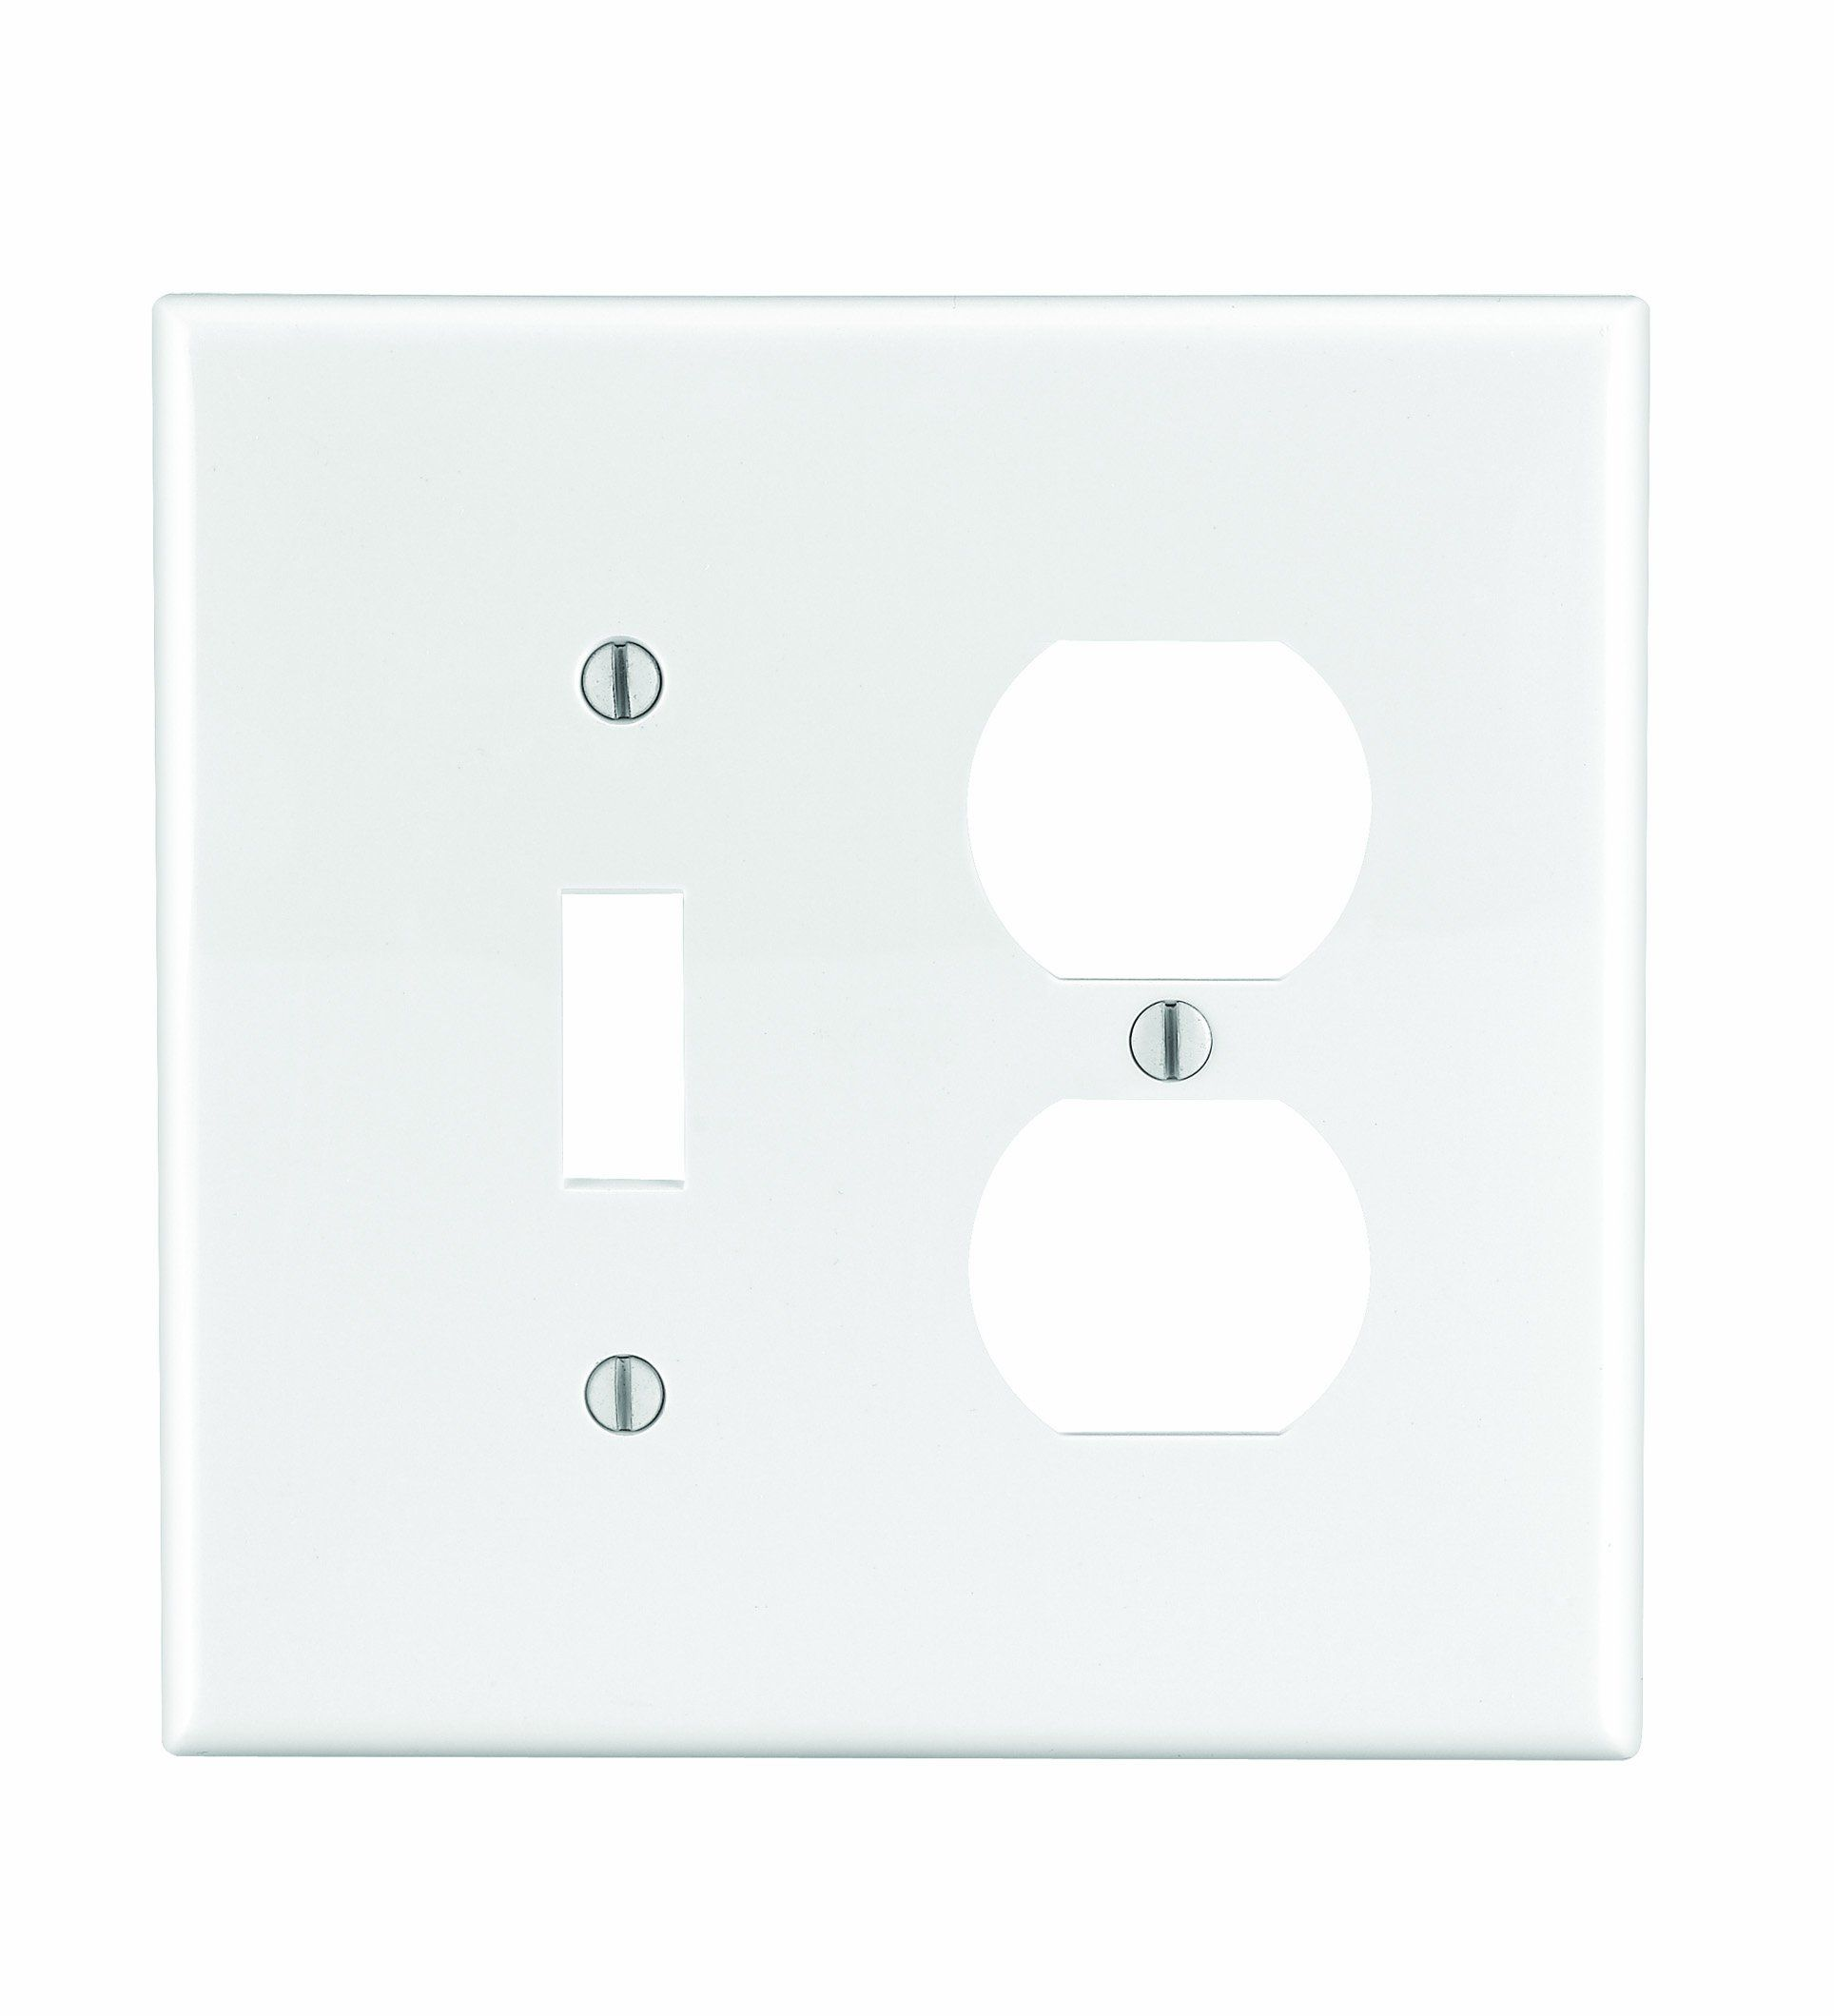 Leviton Pj18 W 2 Gang 1 Toggle 1 Duplex Combination Wallplate Midway Size White You Can Get Ad Light Accessories Plates On Wall Electrical Outlet Covers